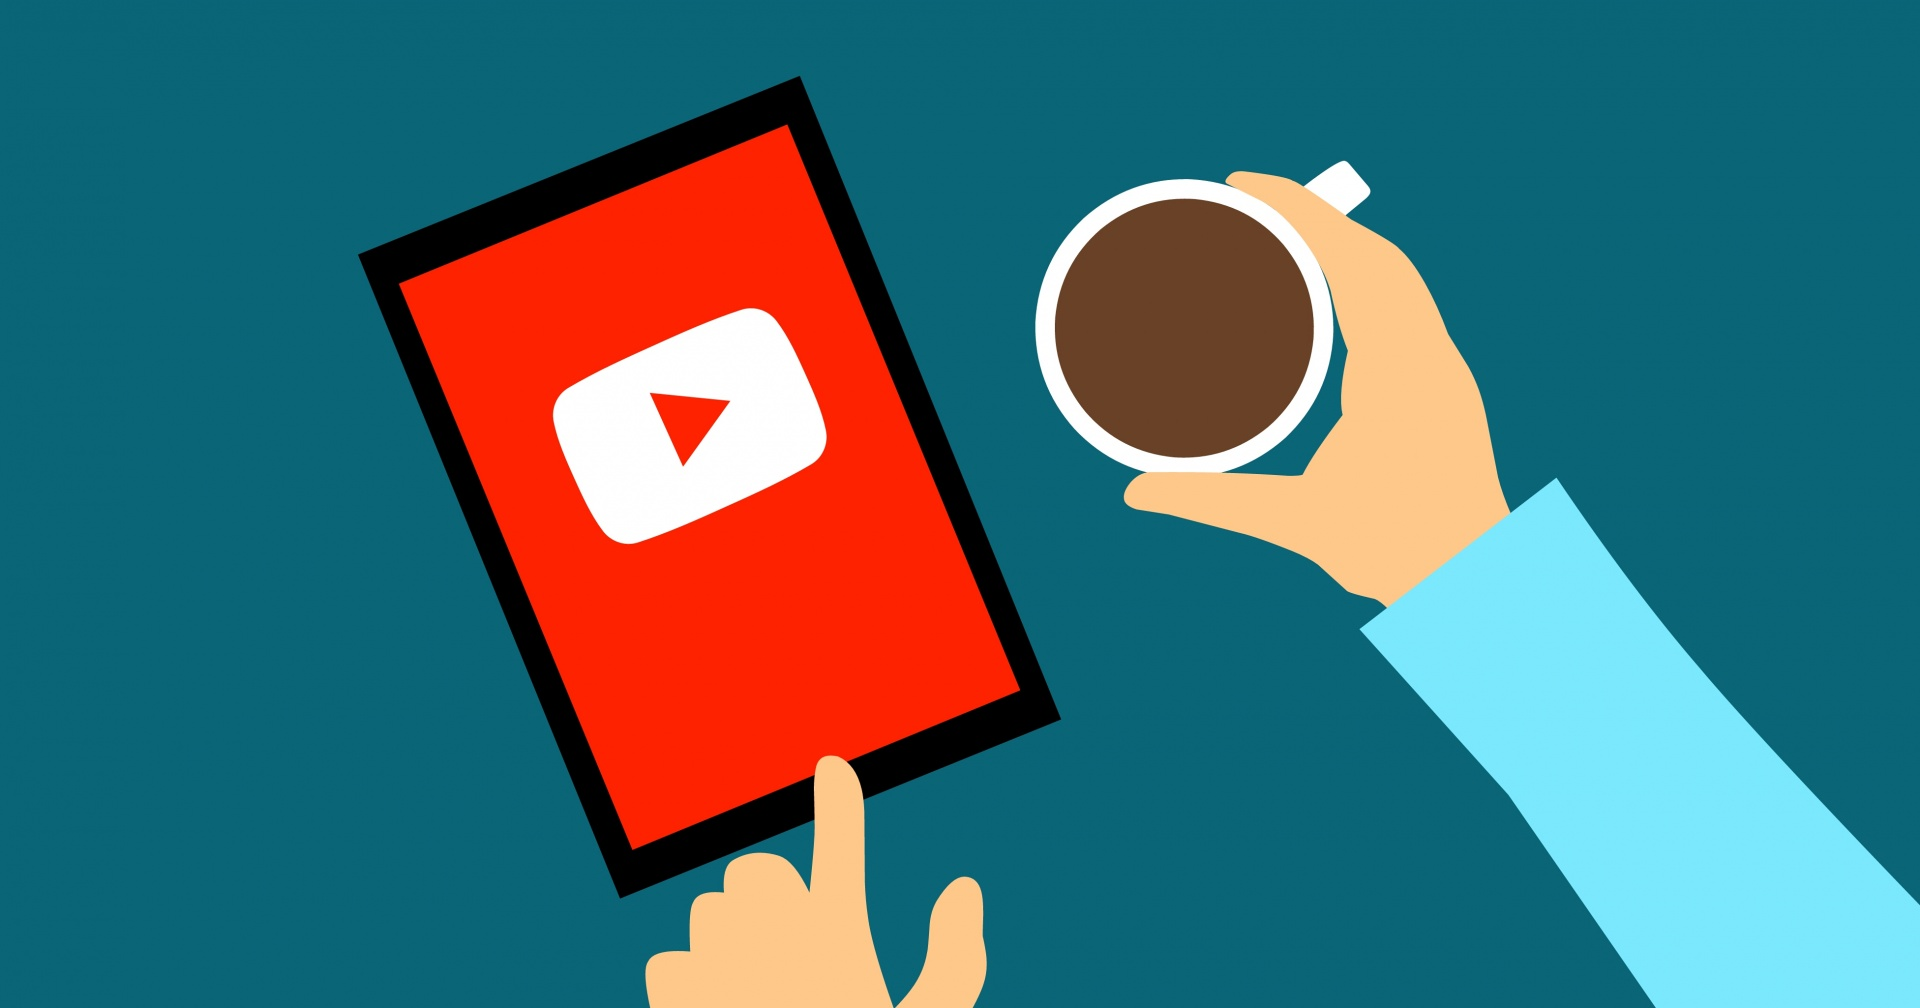 """Pro tips: - Just say """"no"""" to quantity over quality.Peep what is trending on YouTube and take a look at what your friends/social media connects are sharing on other platforms.The loudest voice in any room is money, so remember that influencers can snag advertising income only if viewers like what they see."""